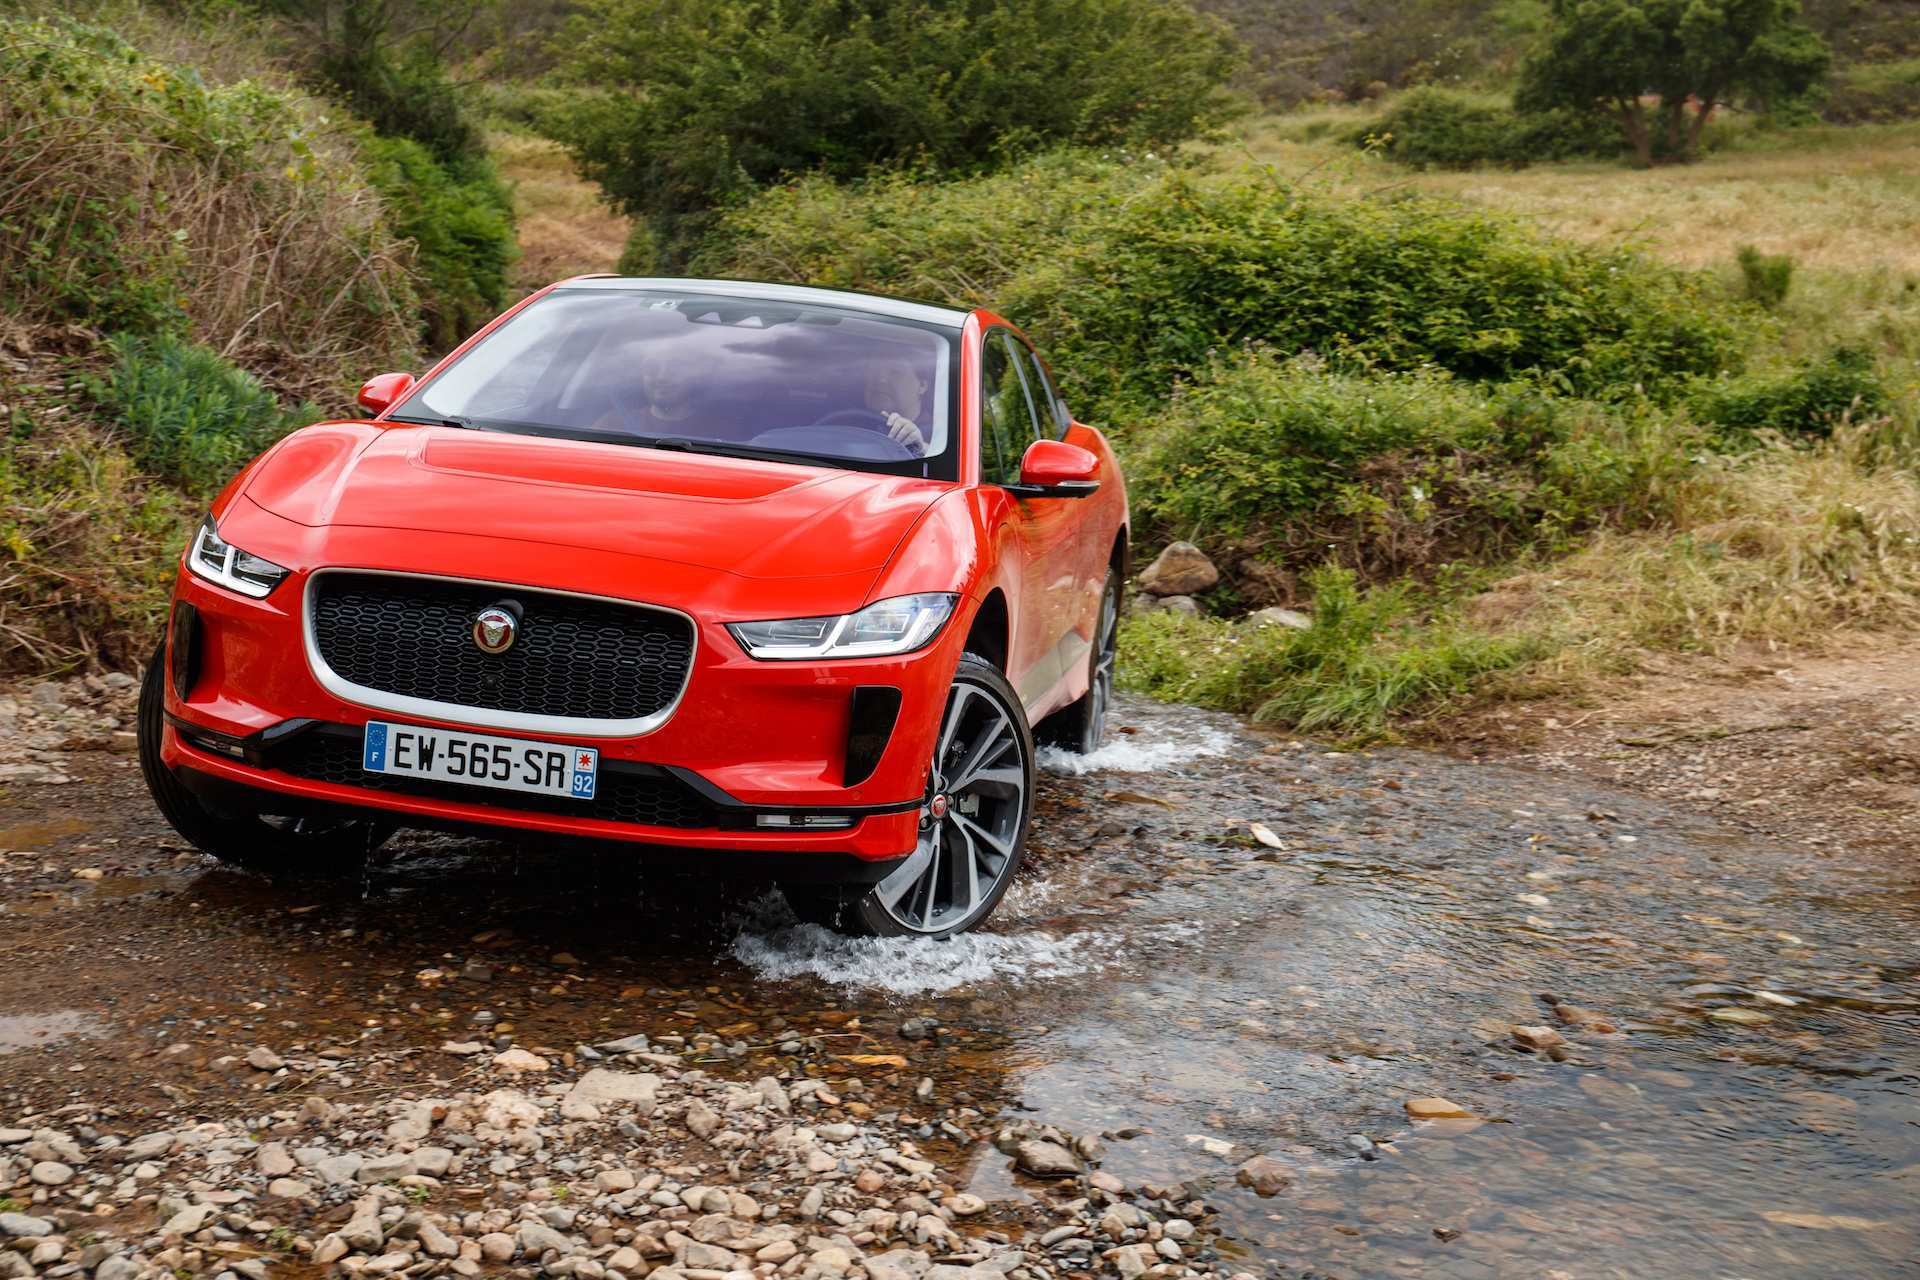 20 Concept of Volvo Electric Suv 2020 New Concept for Volvo Electric Suv 2020